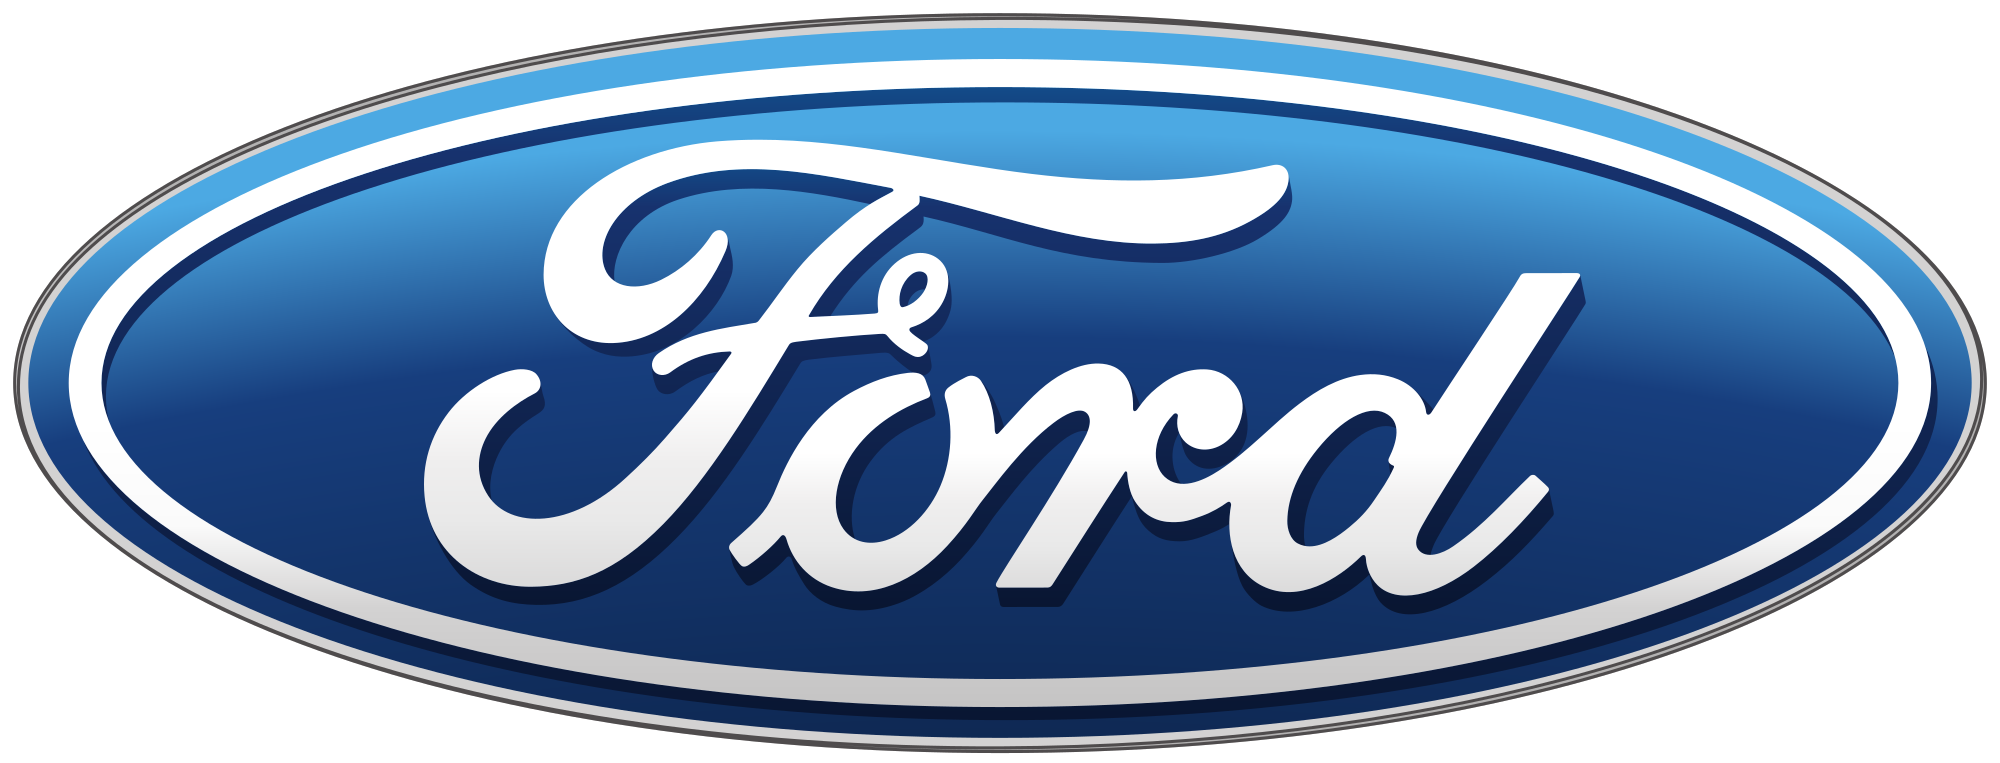 ford motor company logo png